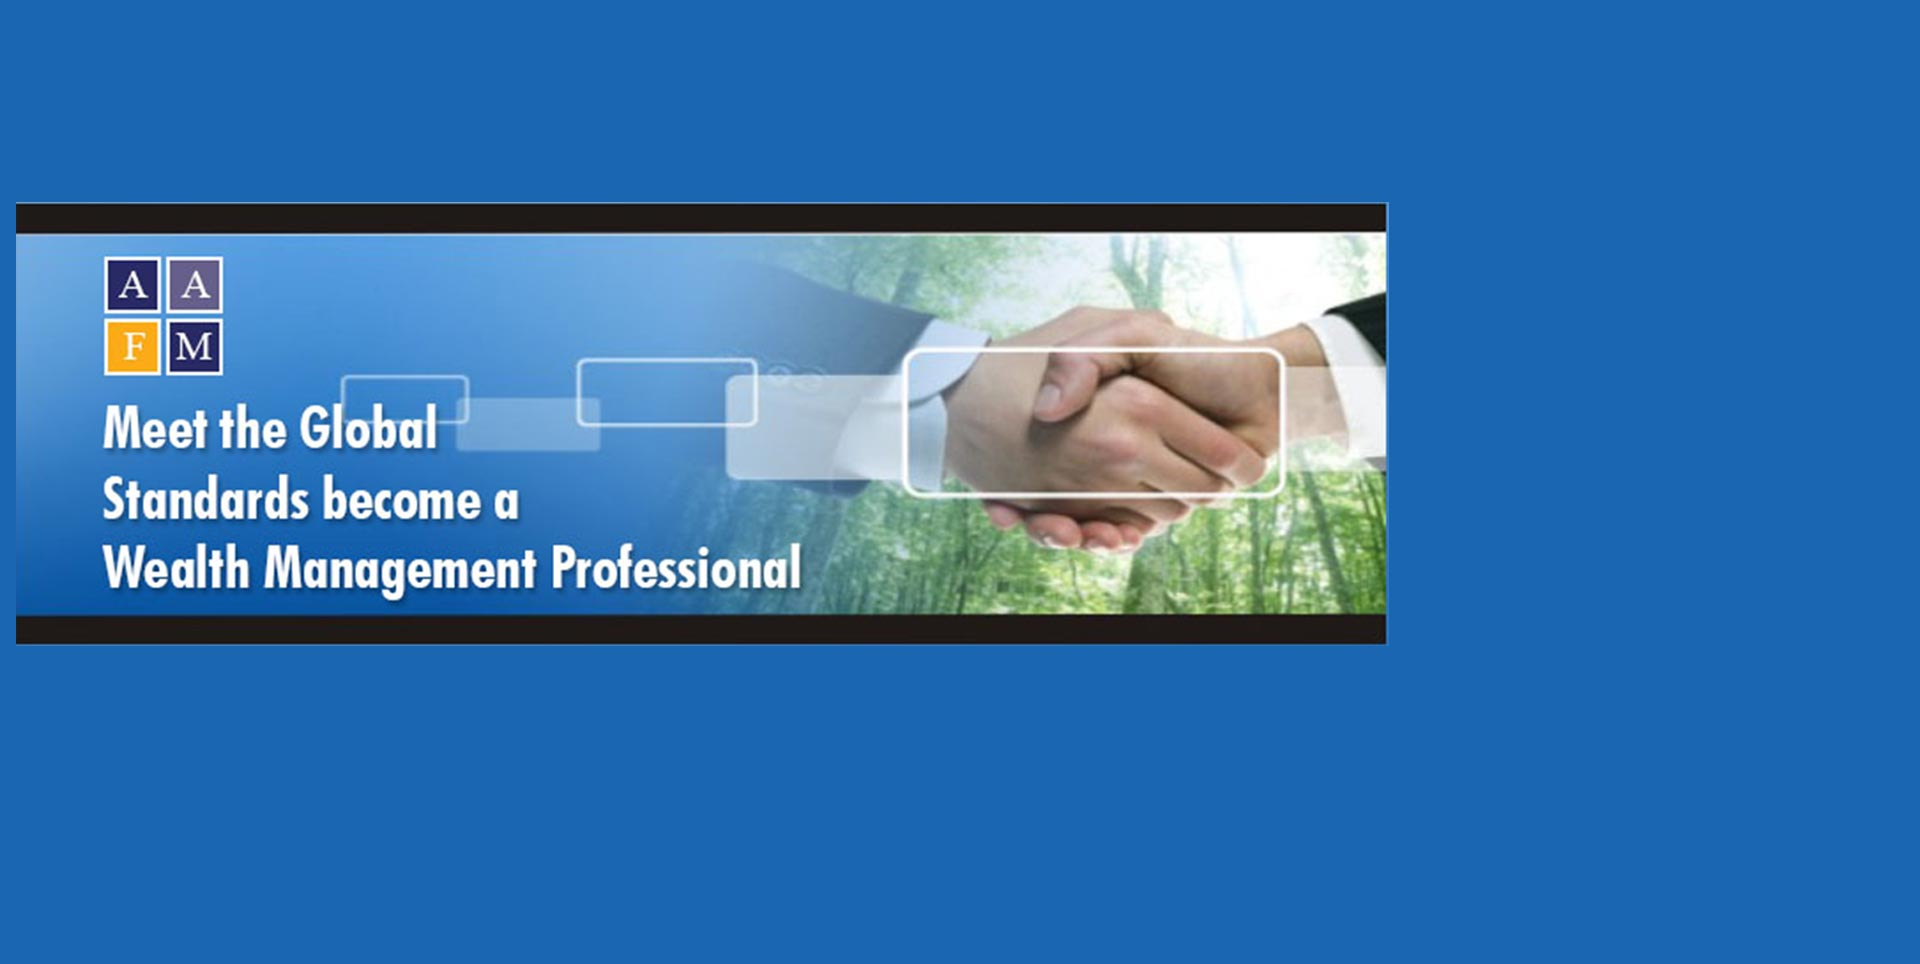 Wealth Management Professional